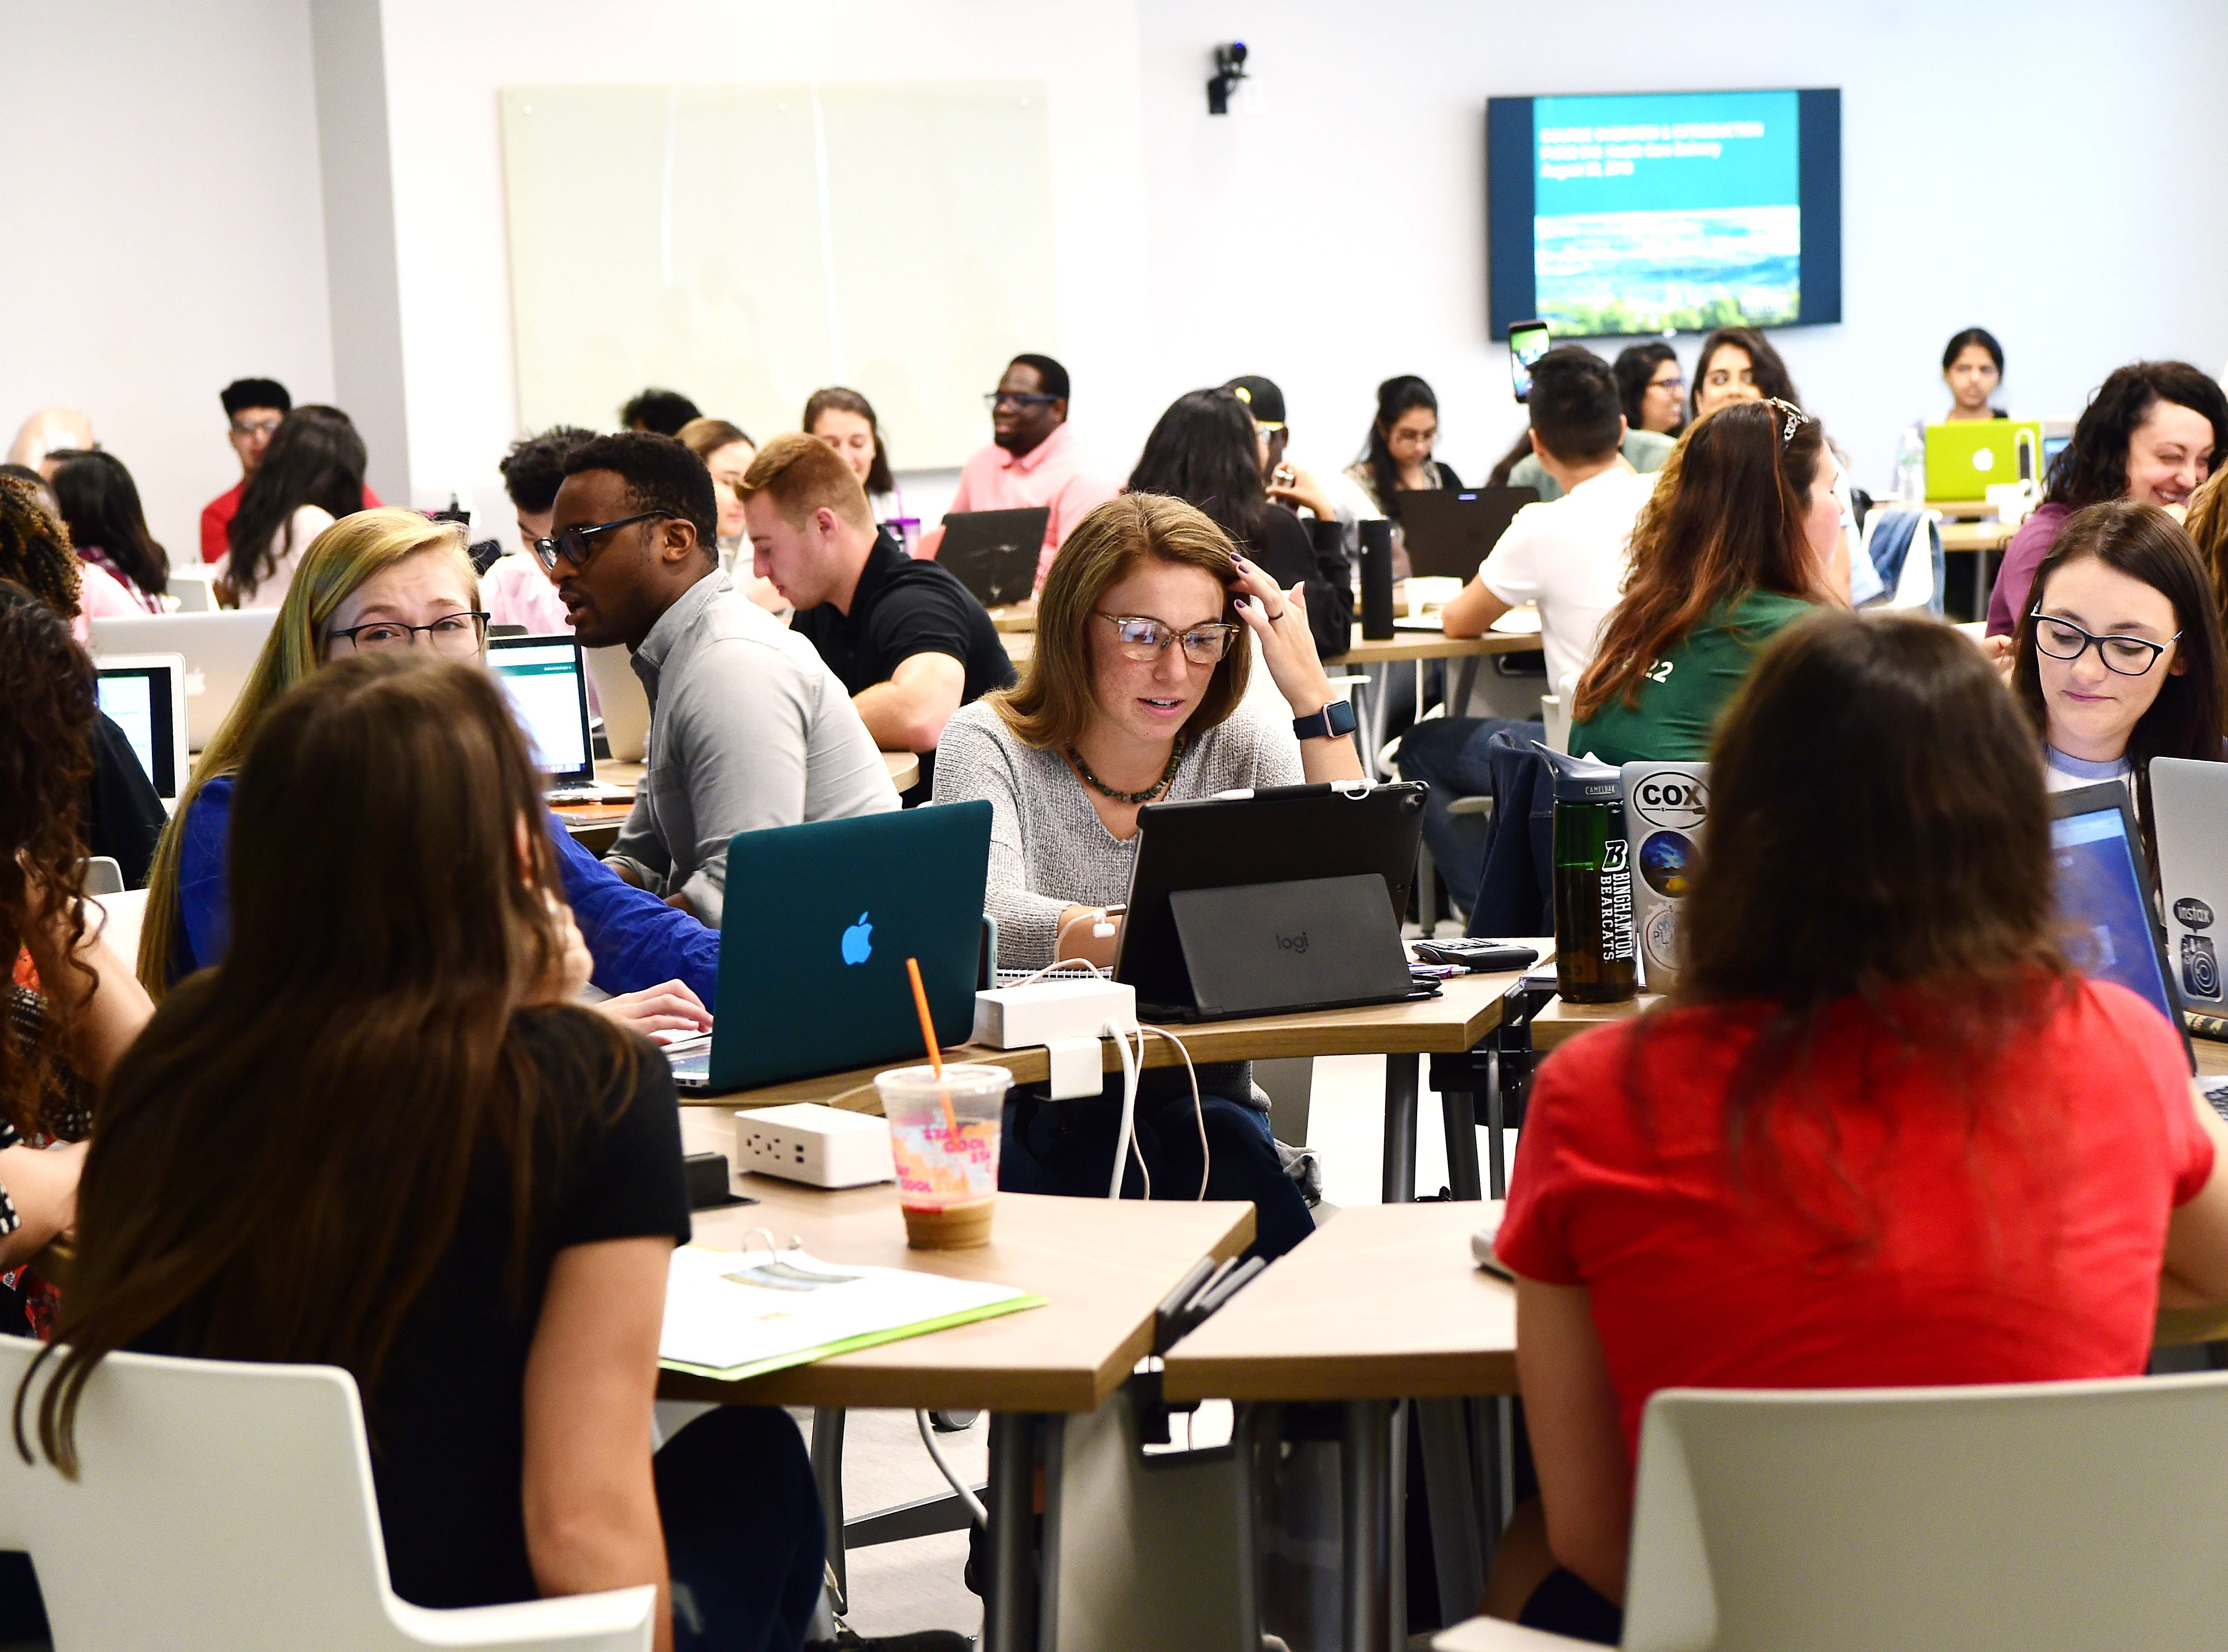 Students in a classroom at Binghamton University's new School of Pharmacy and Pharmaceutical Sciences, which officially opened for the start on classes on Wednesday, August 22, 2018.Binghamton University's new School of Pharmacy and Pharmaceutical Sciences officially opened for the start on classes on Wednesday, August 22, 2018. The opening of the academic building at 96 Corliss Ave., Johnson City marks the first phase of the transformation of the former industrial section of Johnson City into the UniversityÕs Health Sciences Campus. Work will soon begin on the adjacent former Endicott Johnson shoe box factory, where the university will house its nursing program. Expected completion of the estimated $30 million renovation of the 48 Corliss Ave. nursing complex is August 2020. The School of Pharmacy and Pharmaceutical Sciences will have approximately 390 students when fully enrolled after four years Ð 360 in the PharmD program and an additional 30 PhD students.